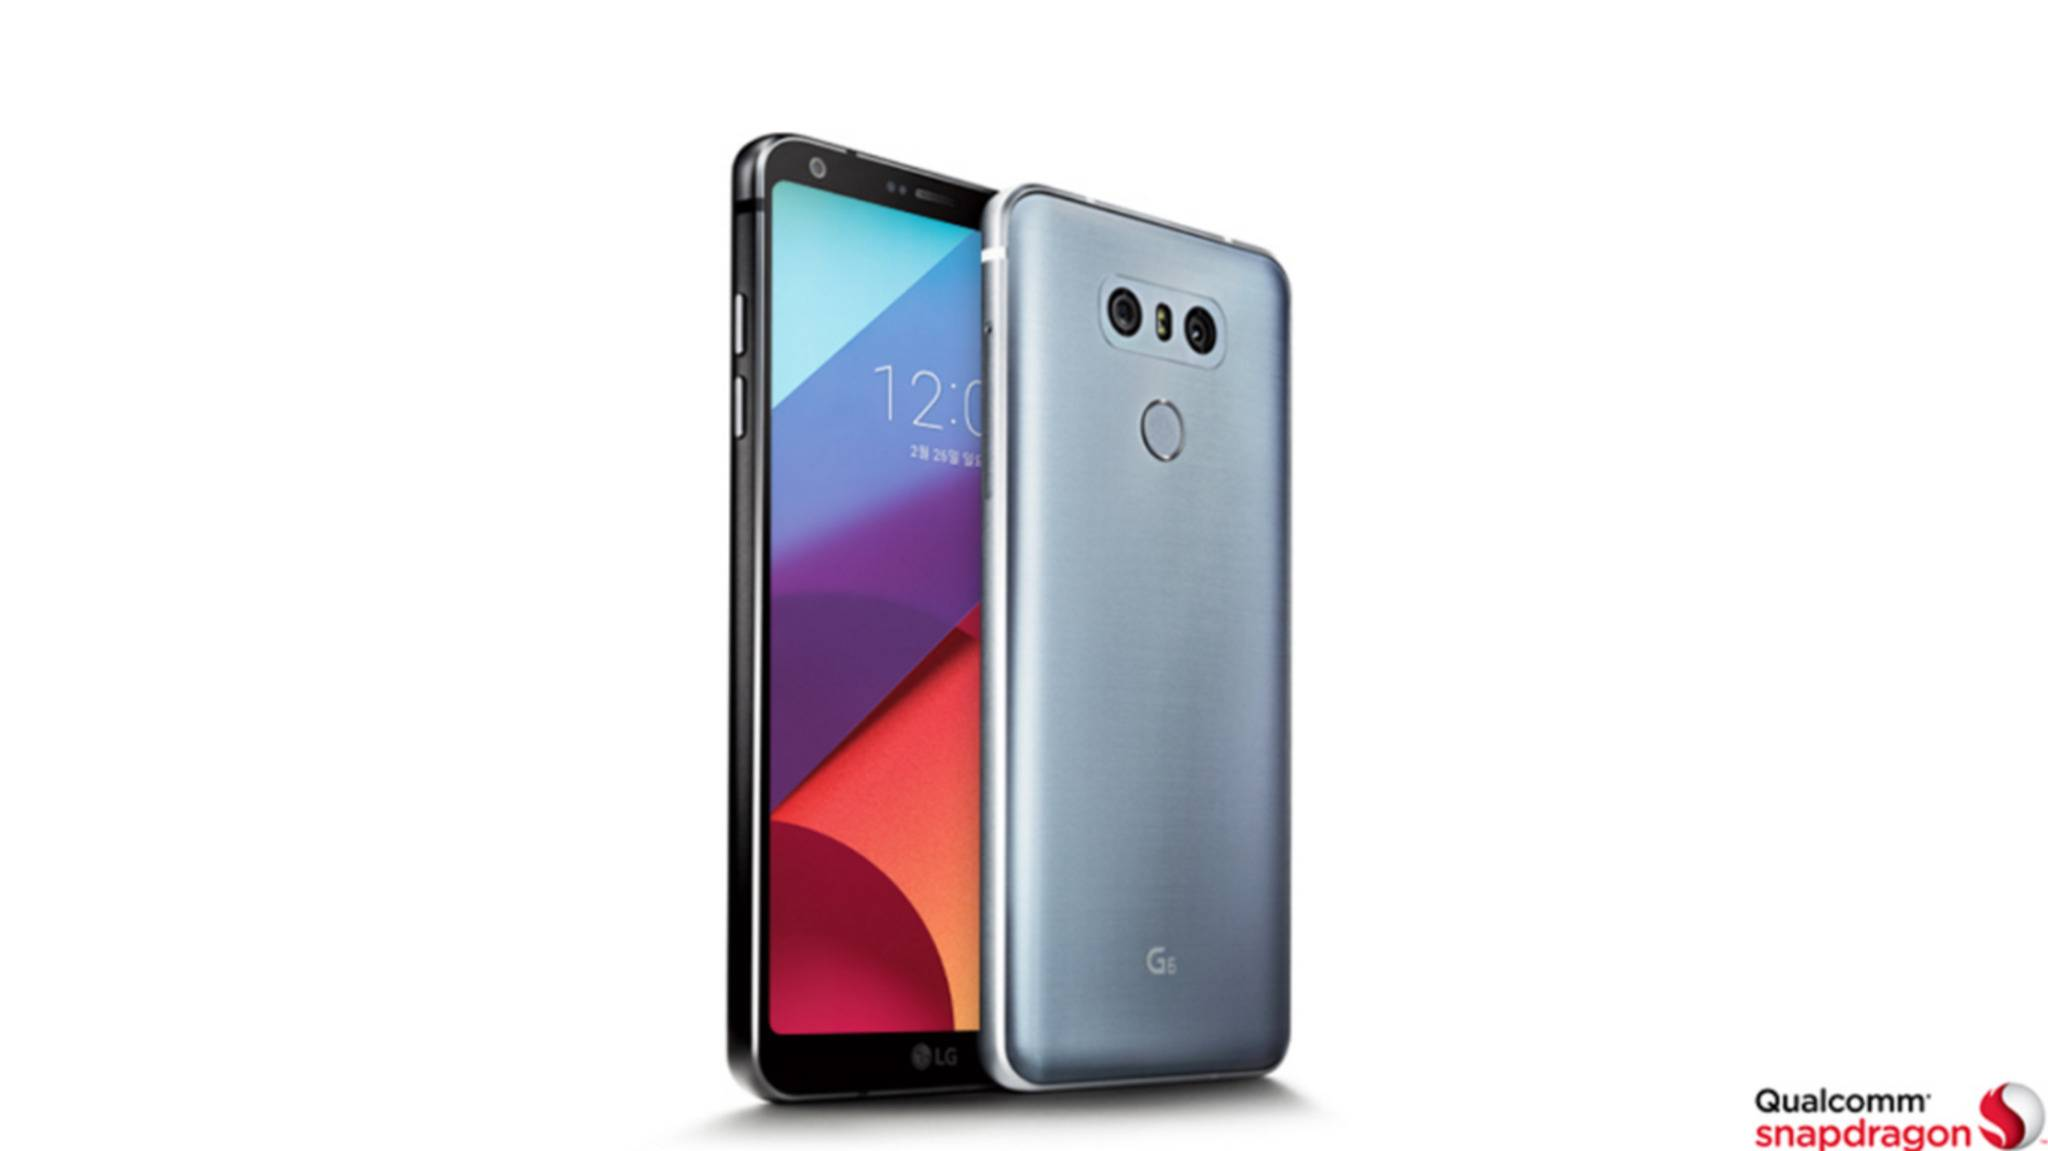 Das LG G6 hat ein Display mit Dolby Vision-Support.